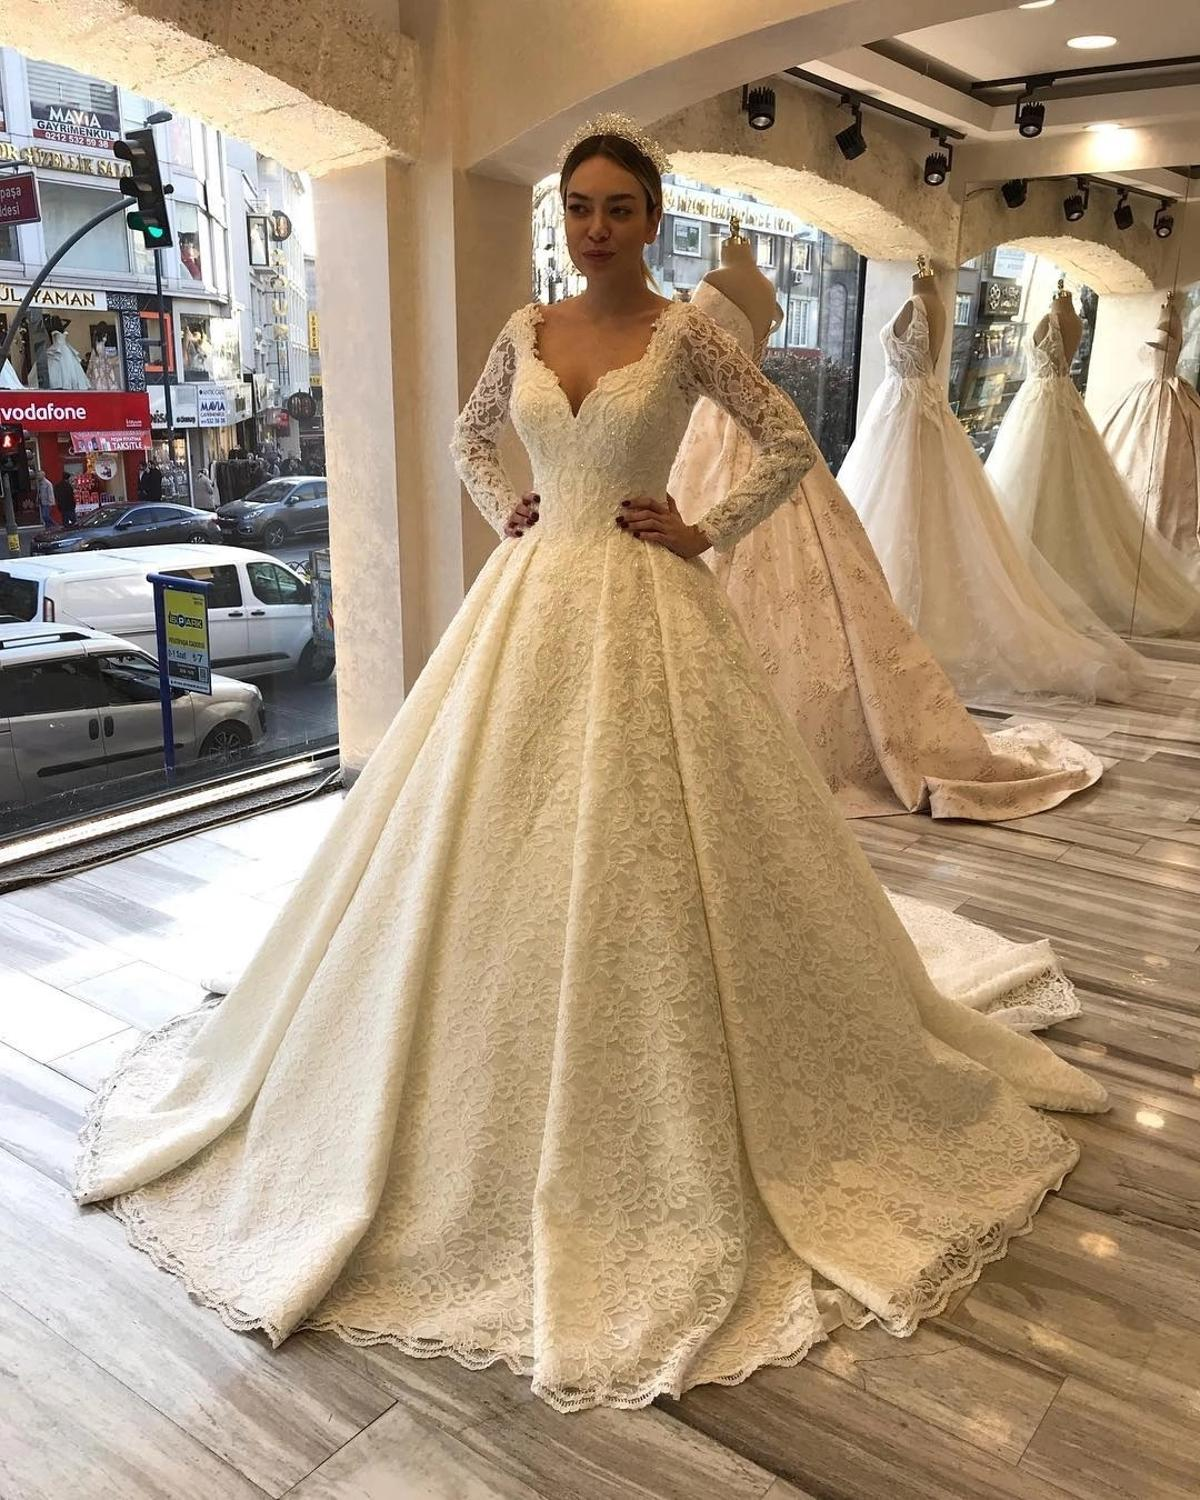 2020 Autumn Long Sleeves Wedding Dress A Line Full Lace Sweetheart Buttons Back Vintage Church Bride Formal Bridal Dresses Wedding Dresses Aliexpress,Wedding Dresses Nordstrom Sale